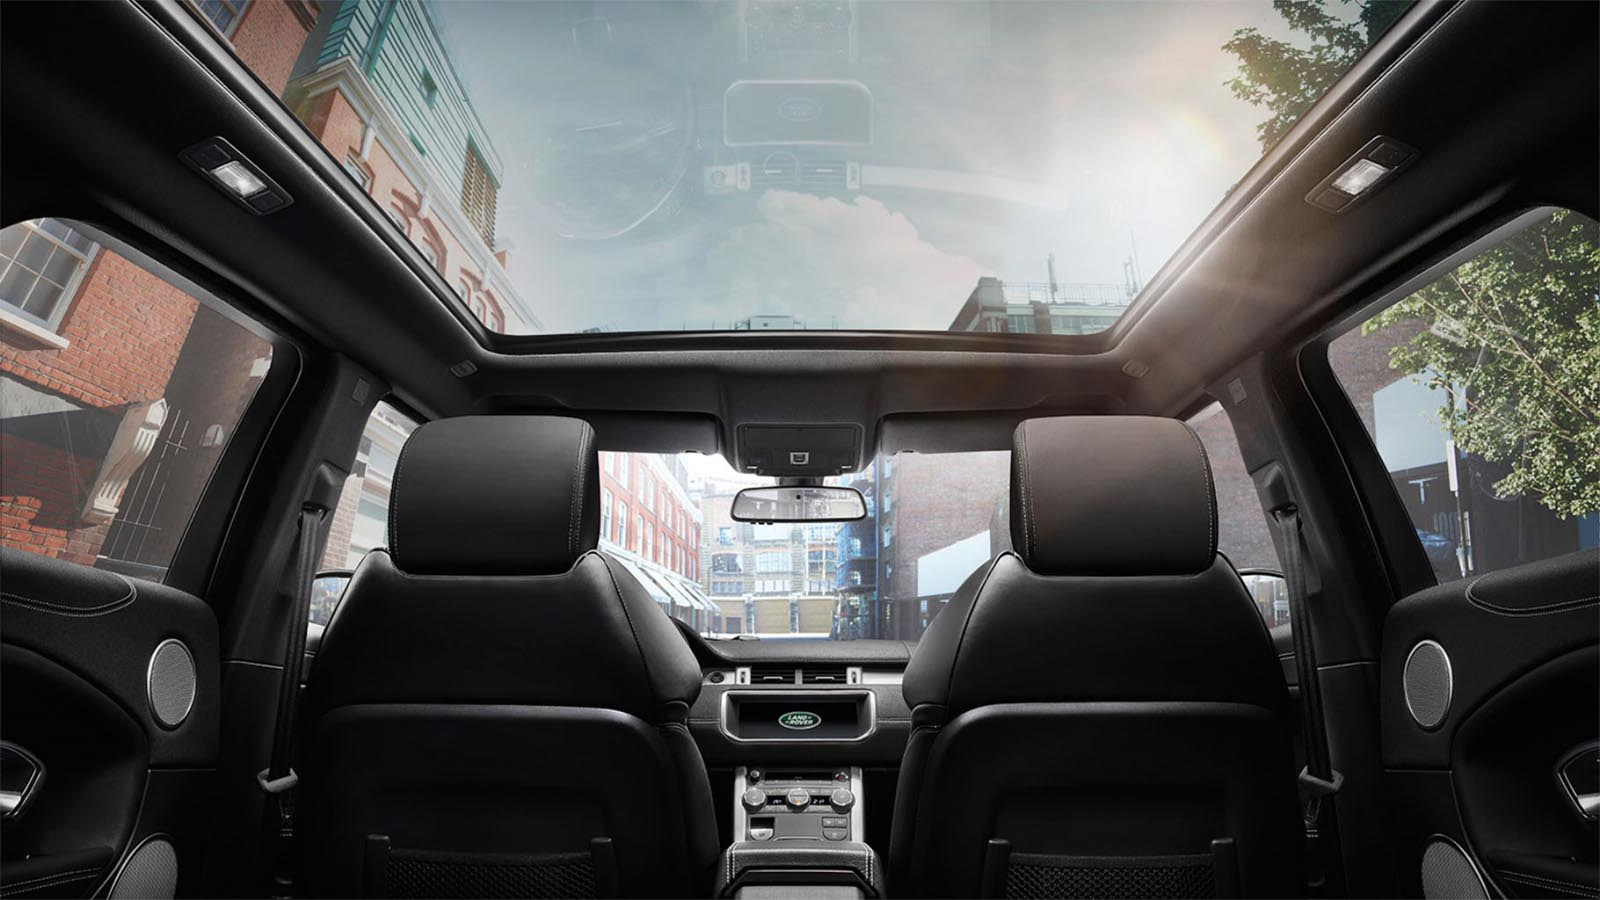 Range Rover Evoque's panoramic roof and in-car entertainment system. 19MY Shown.